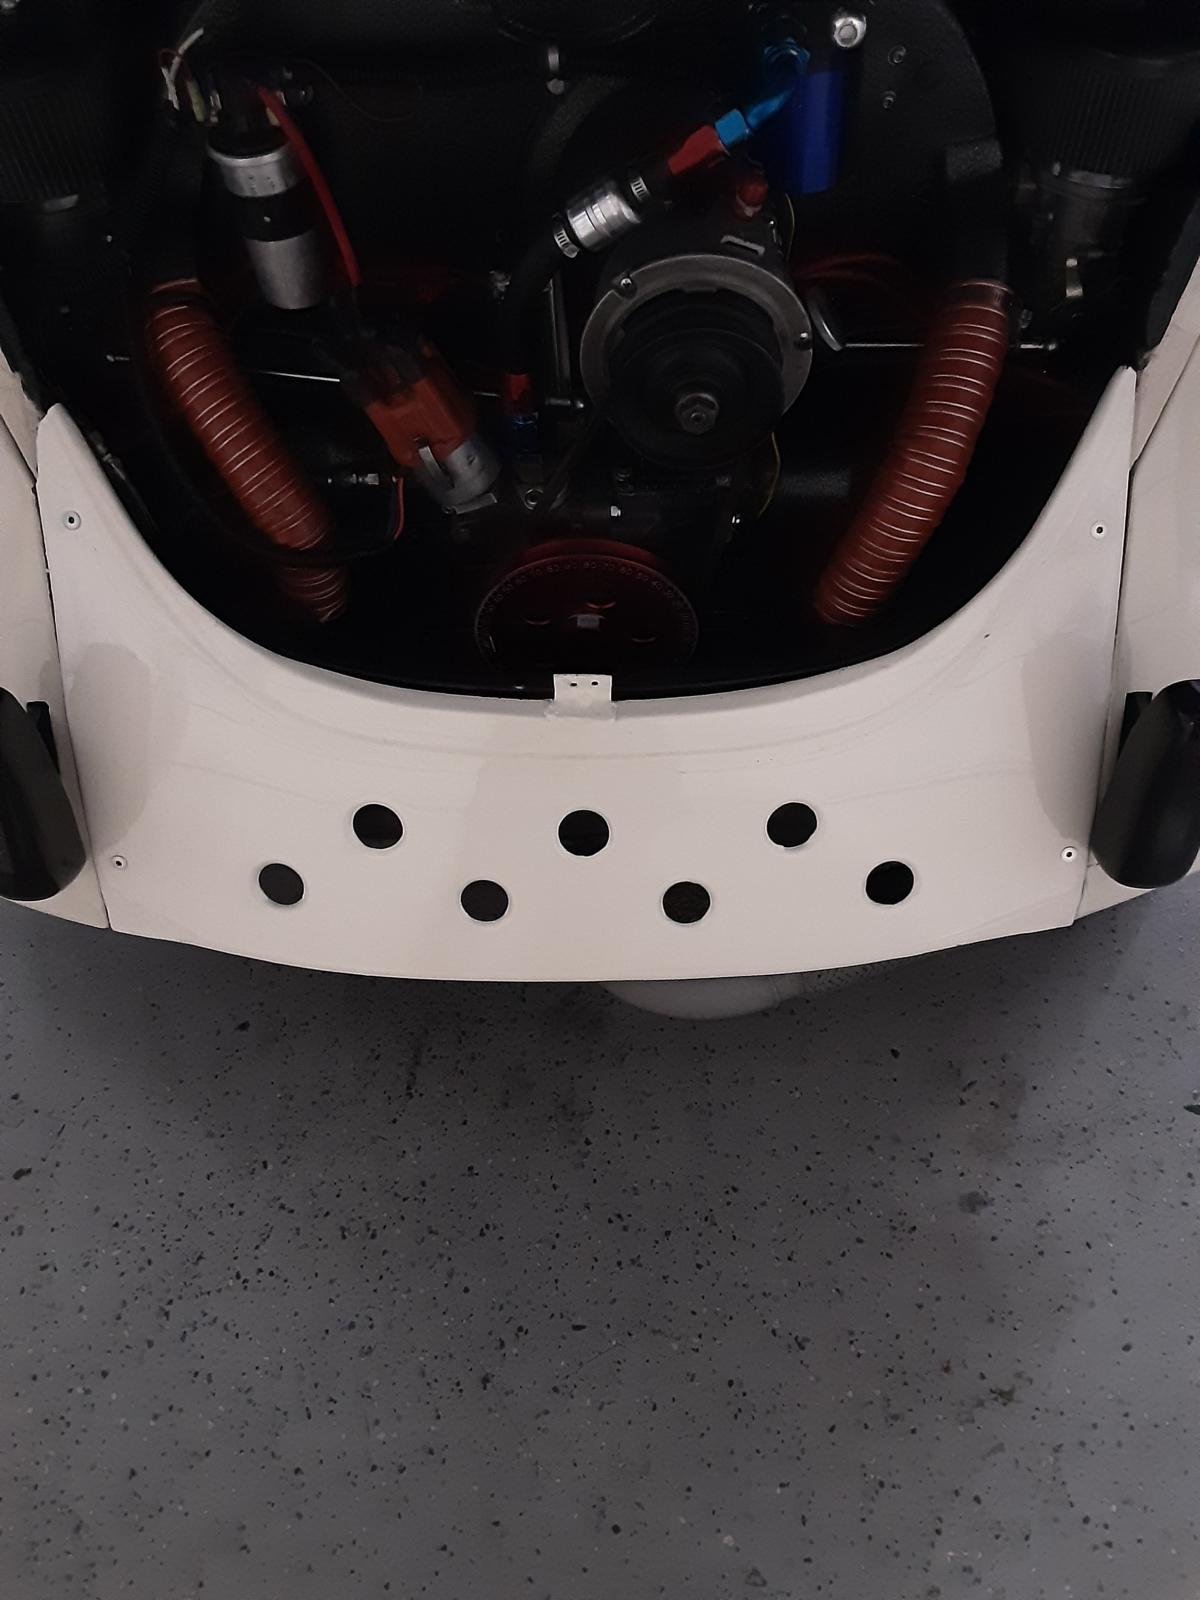 Removable rear panel